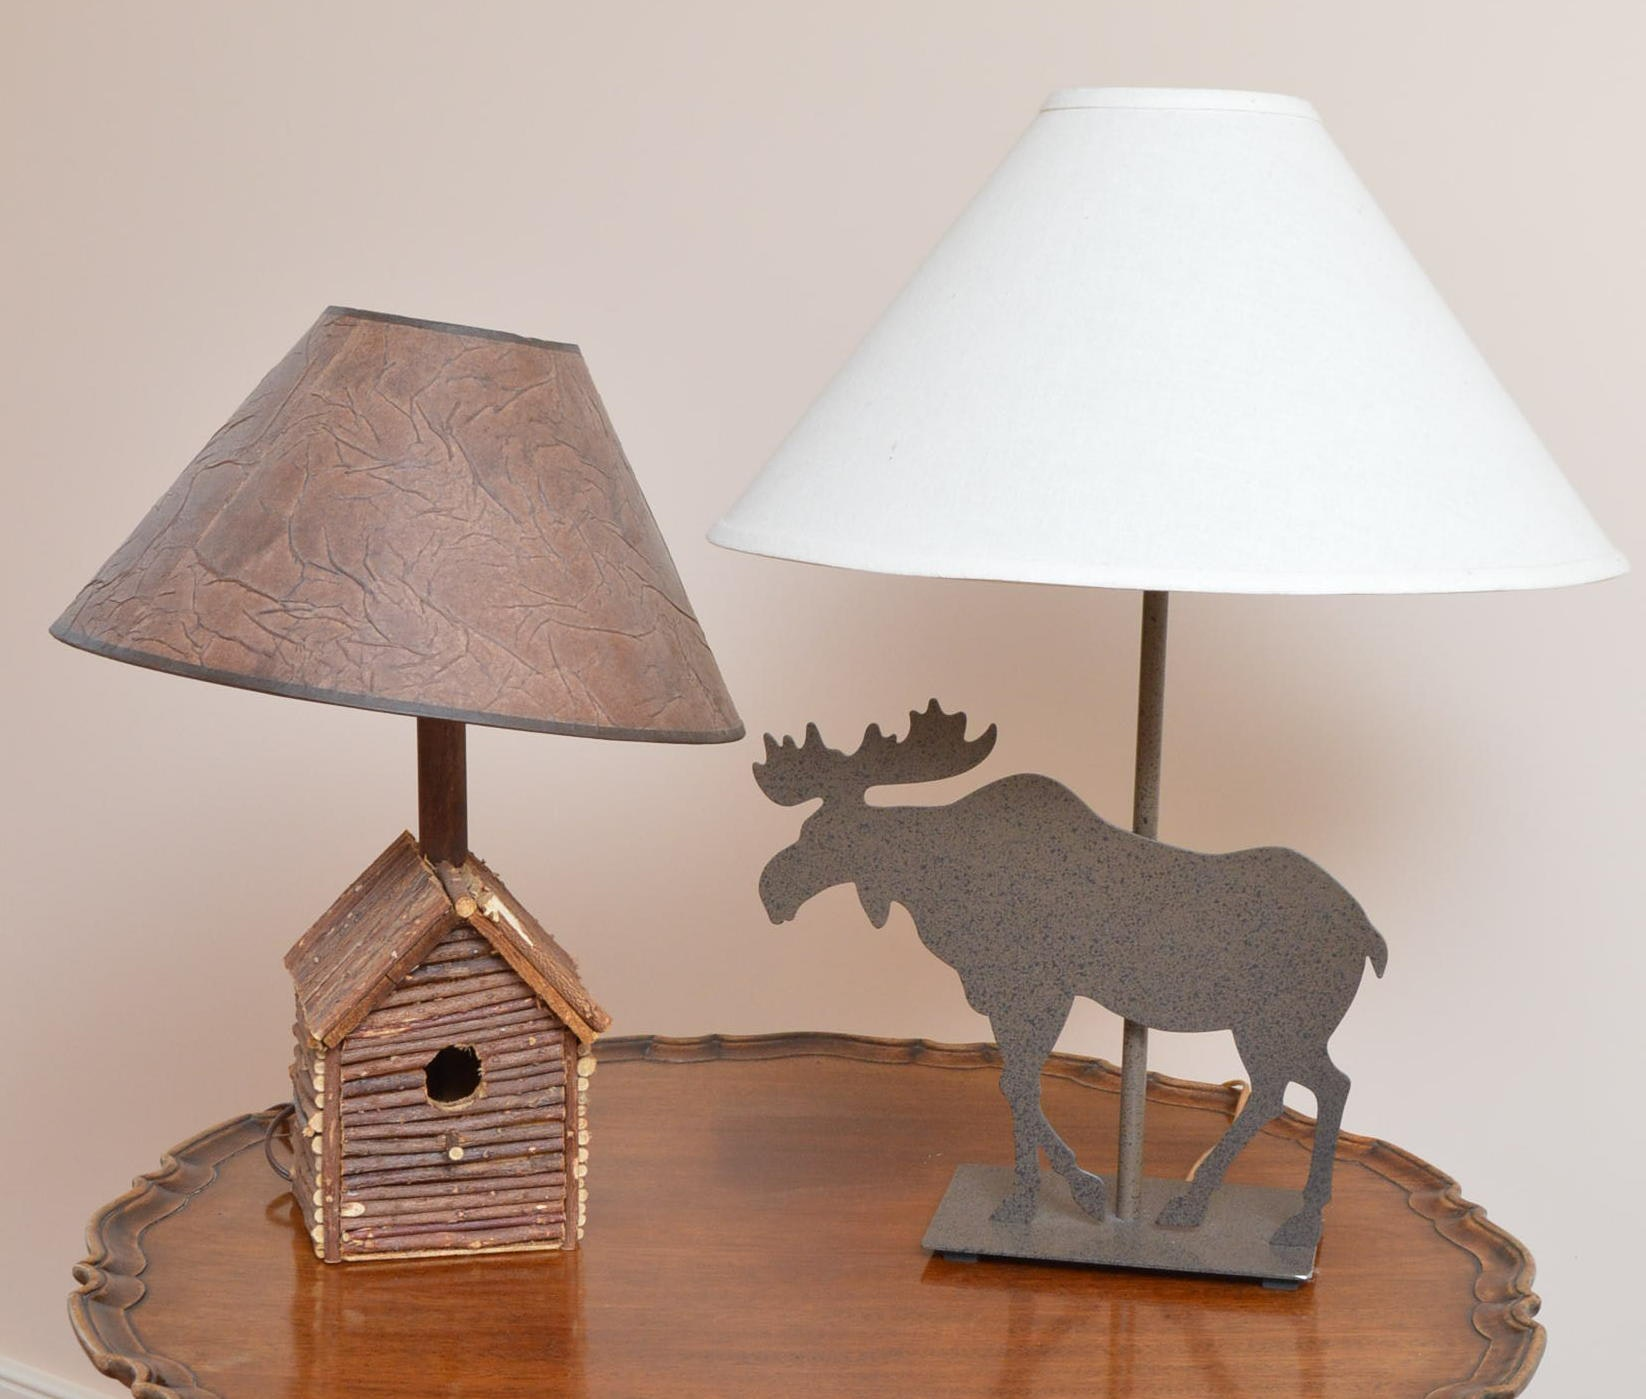 Moose and Birdhouse Themed Table Lamps